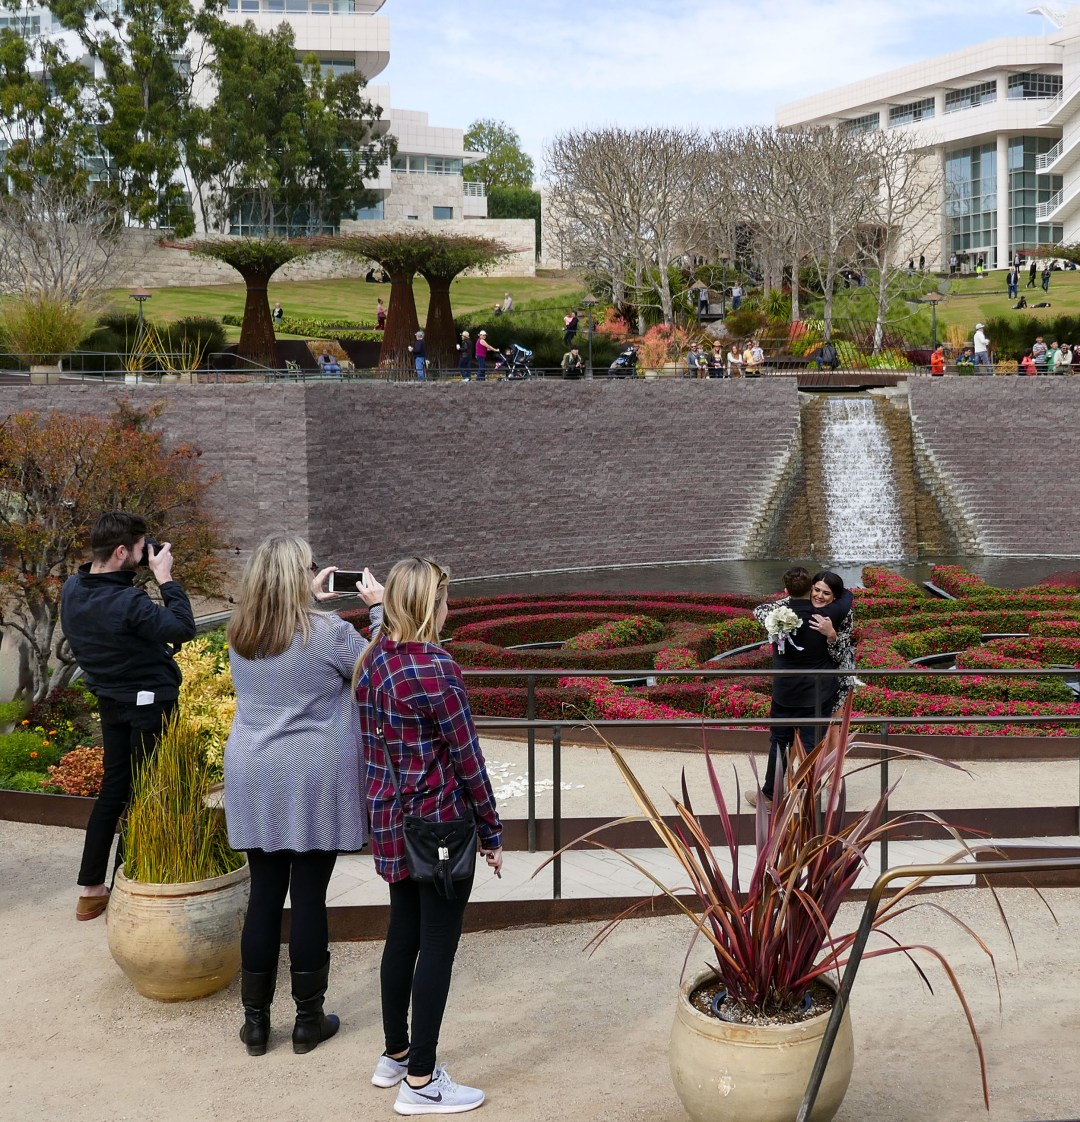 She said yes at the Getty Center for boomervoice